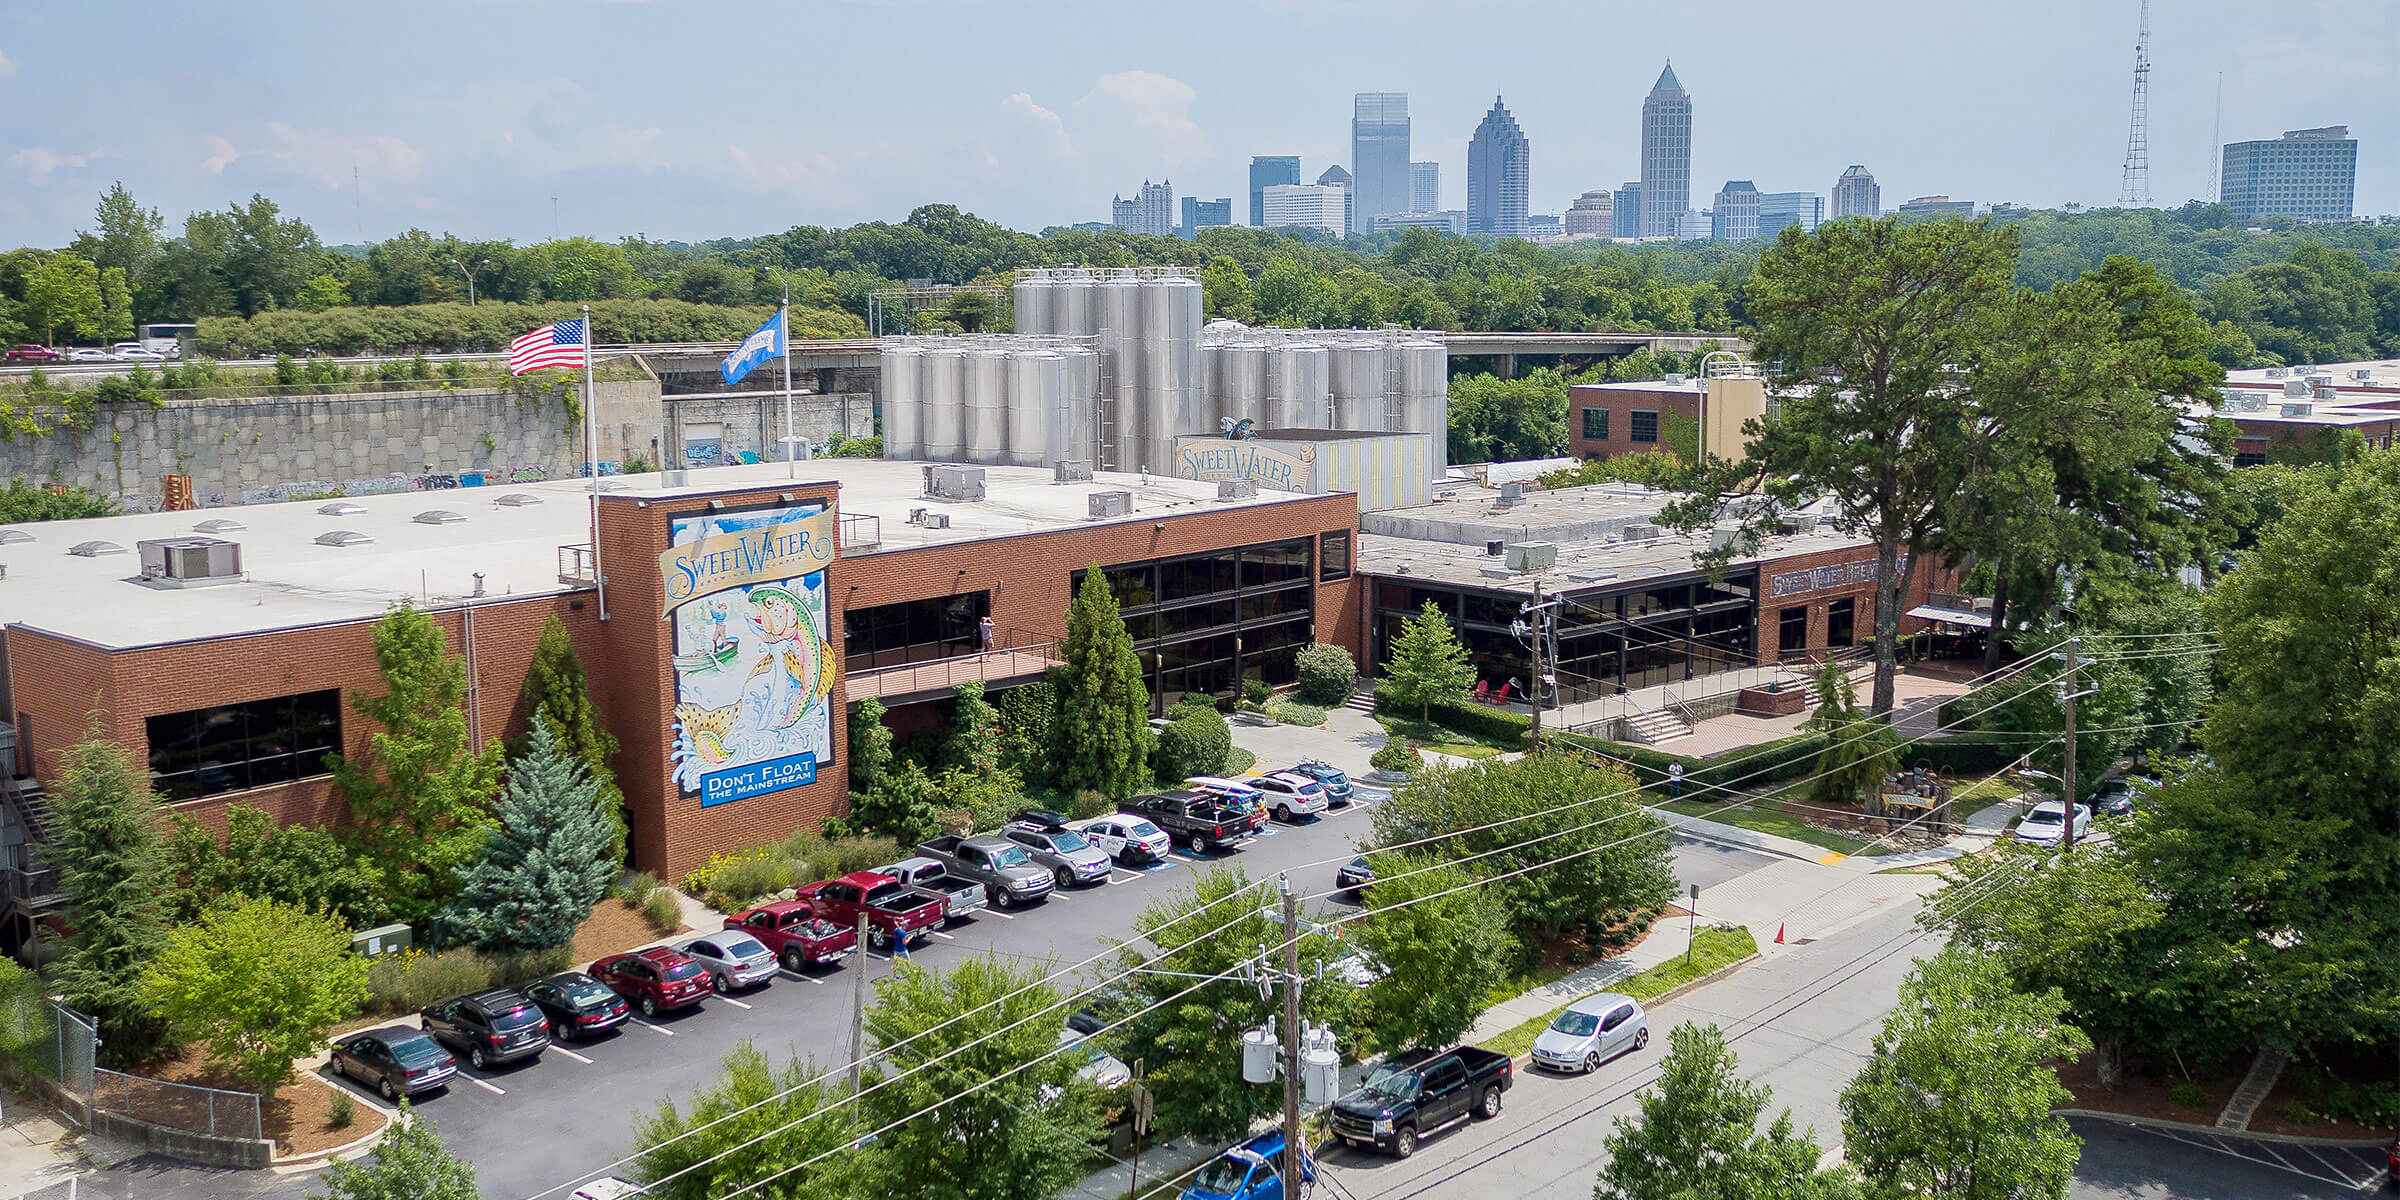 Above the SweetWater Brewing Company in Atlanta, Georgia